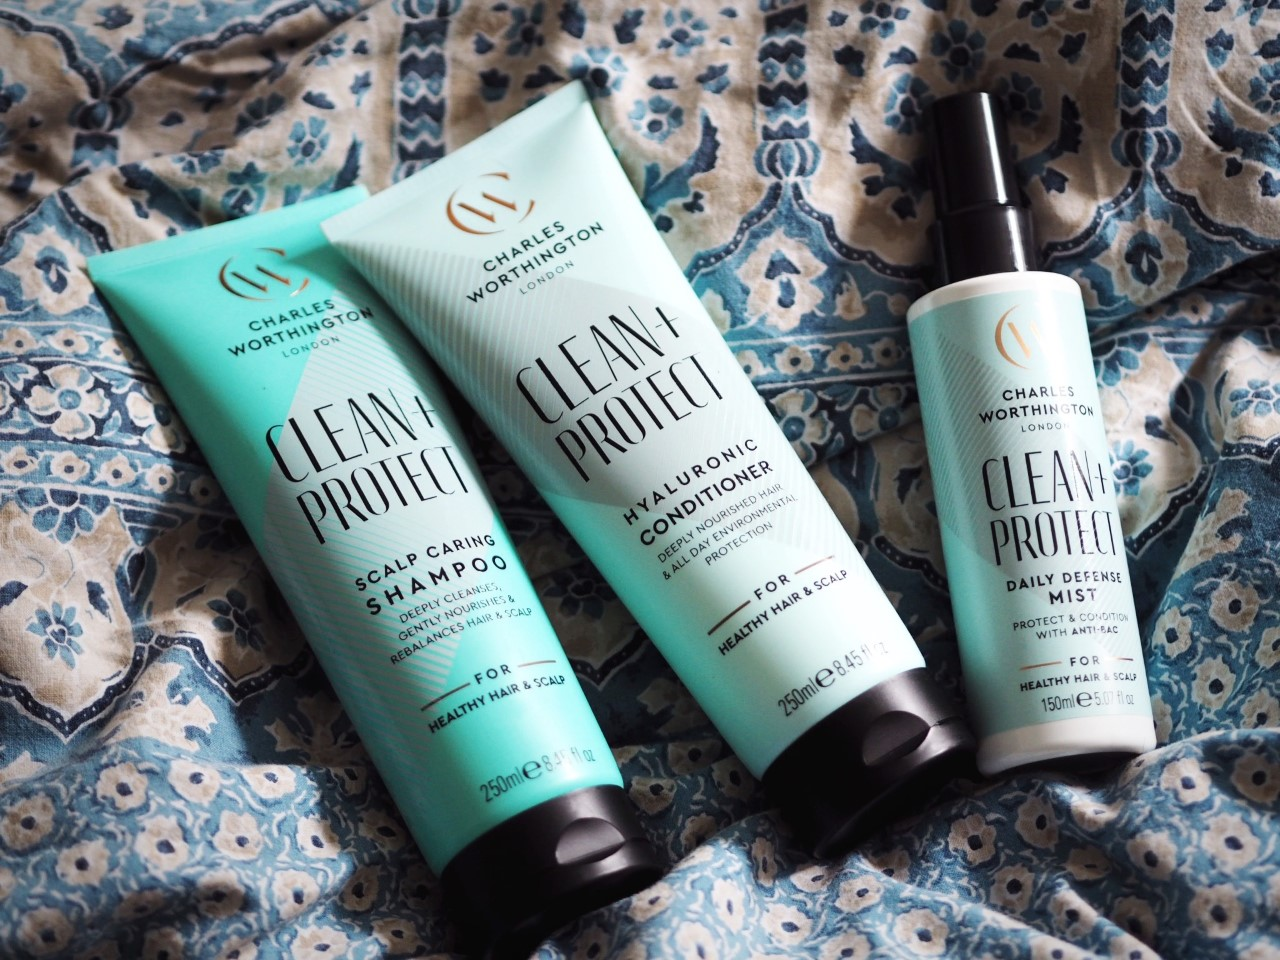 Charles Worthington Clean + Protect review